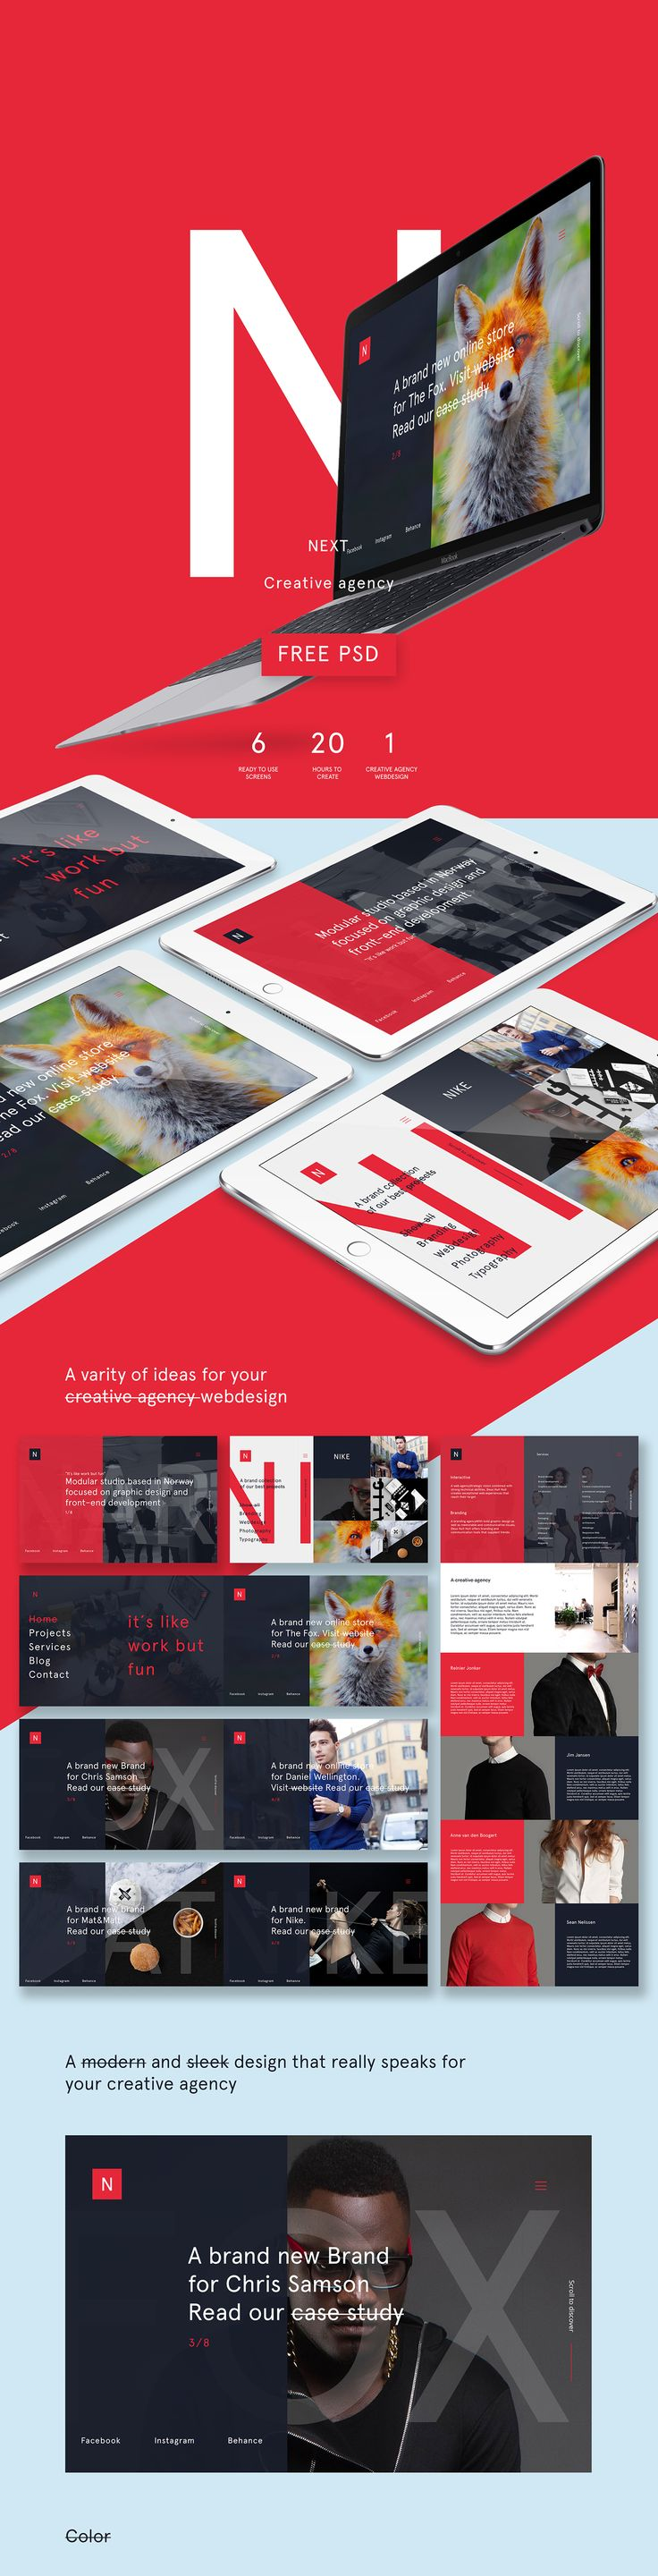 NEXT creative agency - Free PSD TemplateI do not own any of the picturesThanks to Agency No9 for Team picturehttp://no9.com